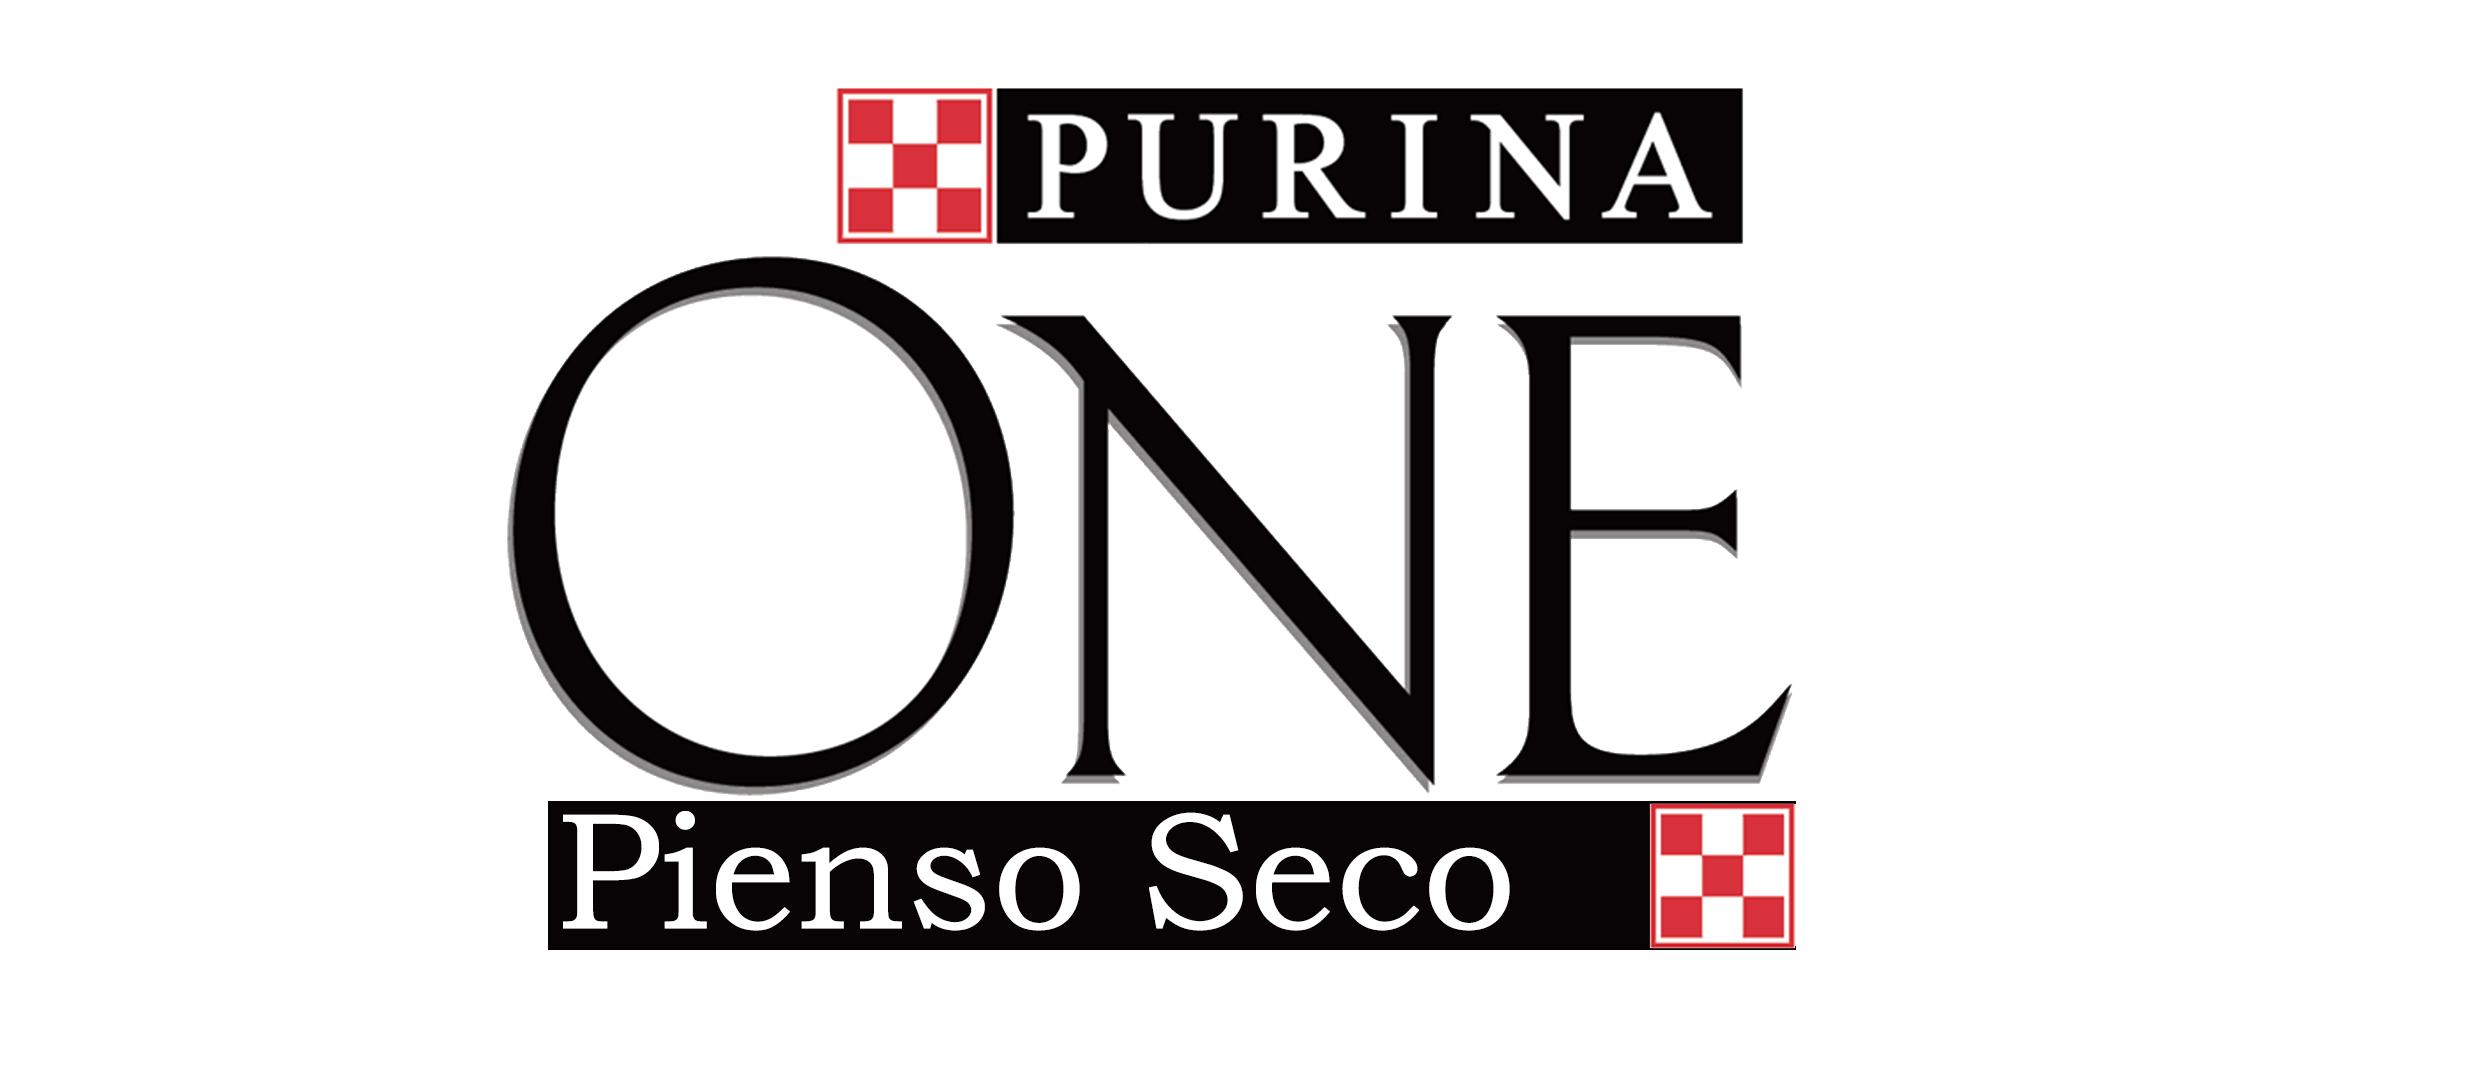 Purina One Pienso Seco